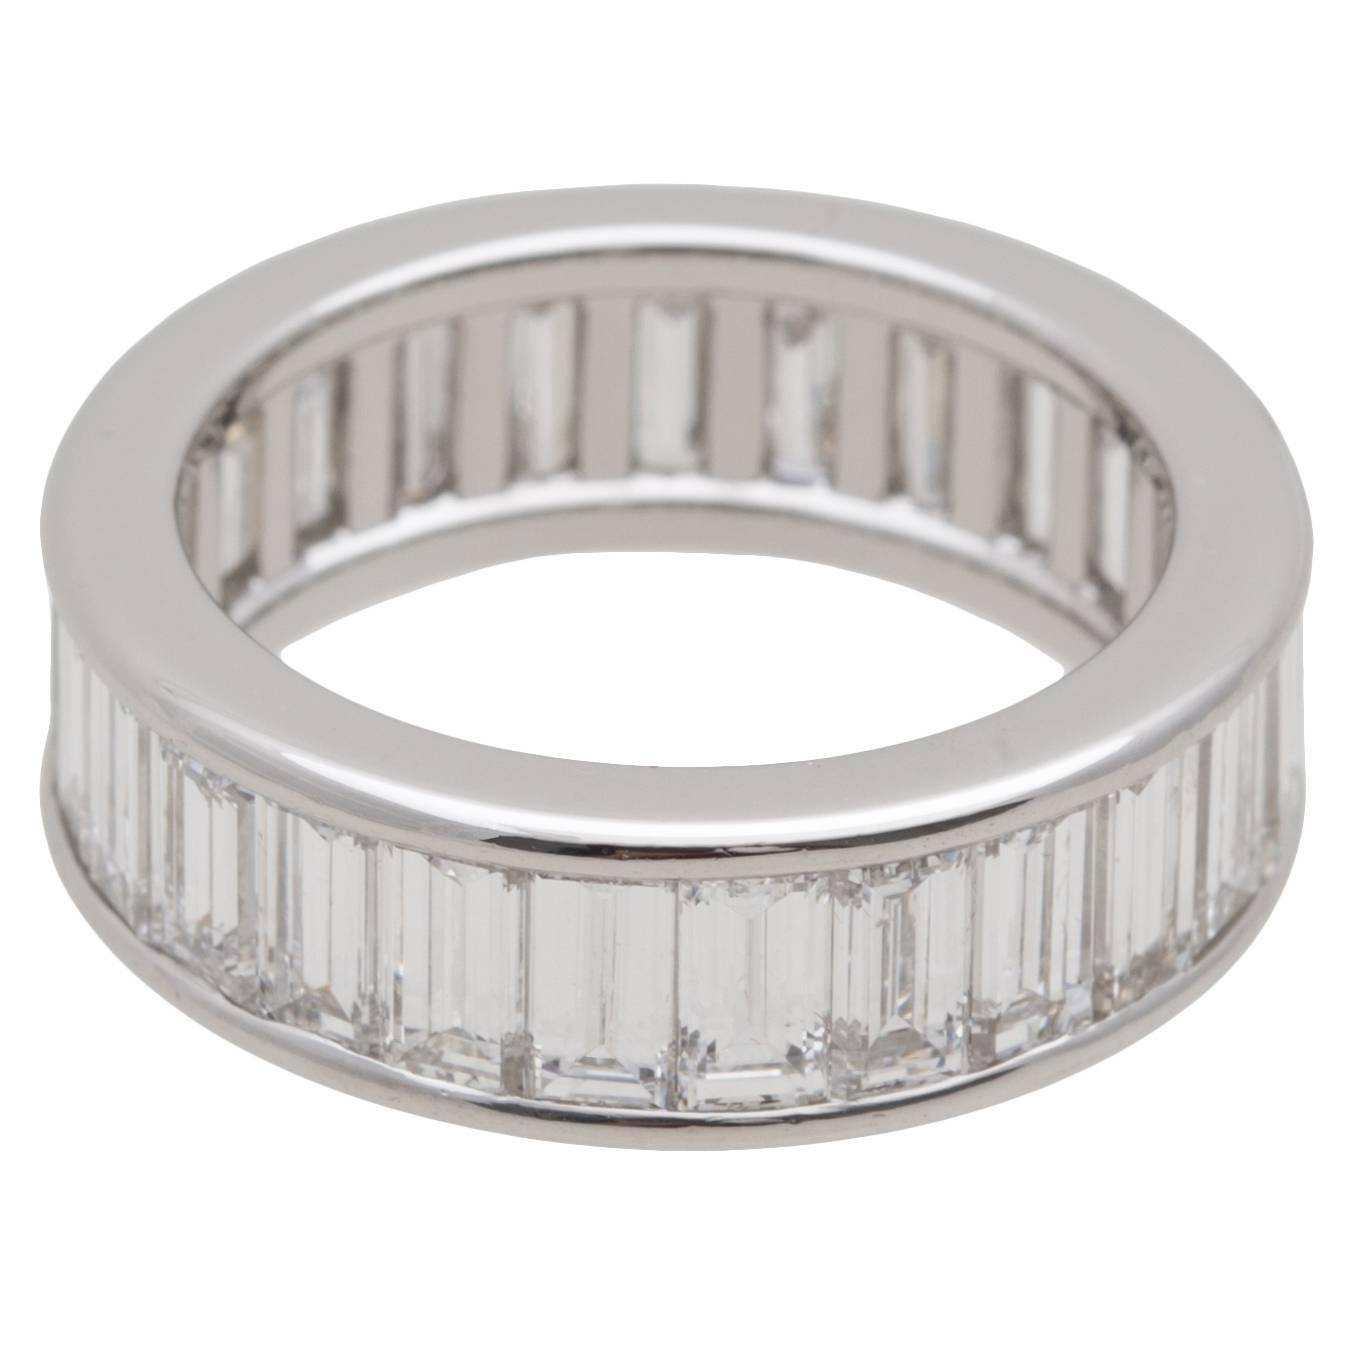 Cartier Diamond Baguette Platinum Eternity Wedding Ring For Sale Within Baguette Cut Diamond Wedding Bands (View 2 of 15)